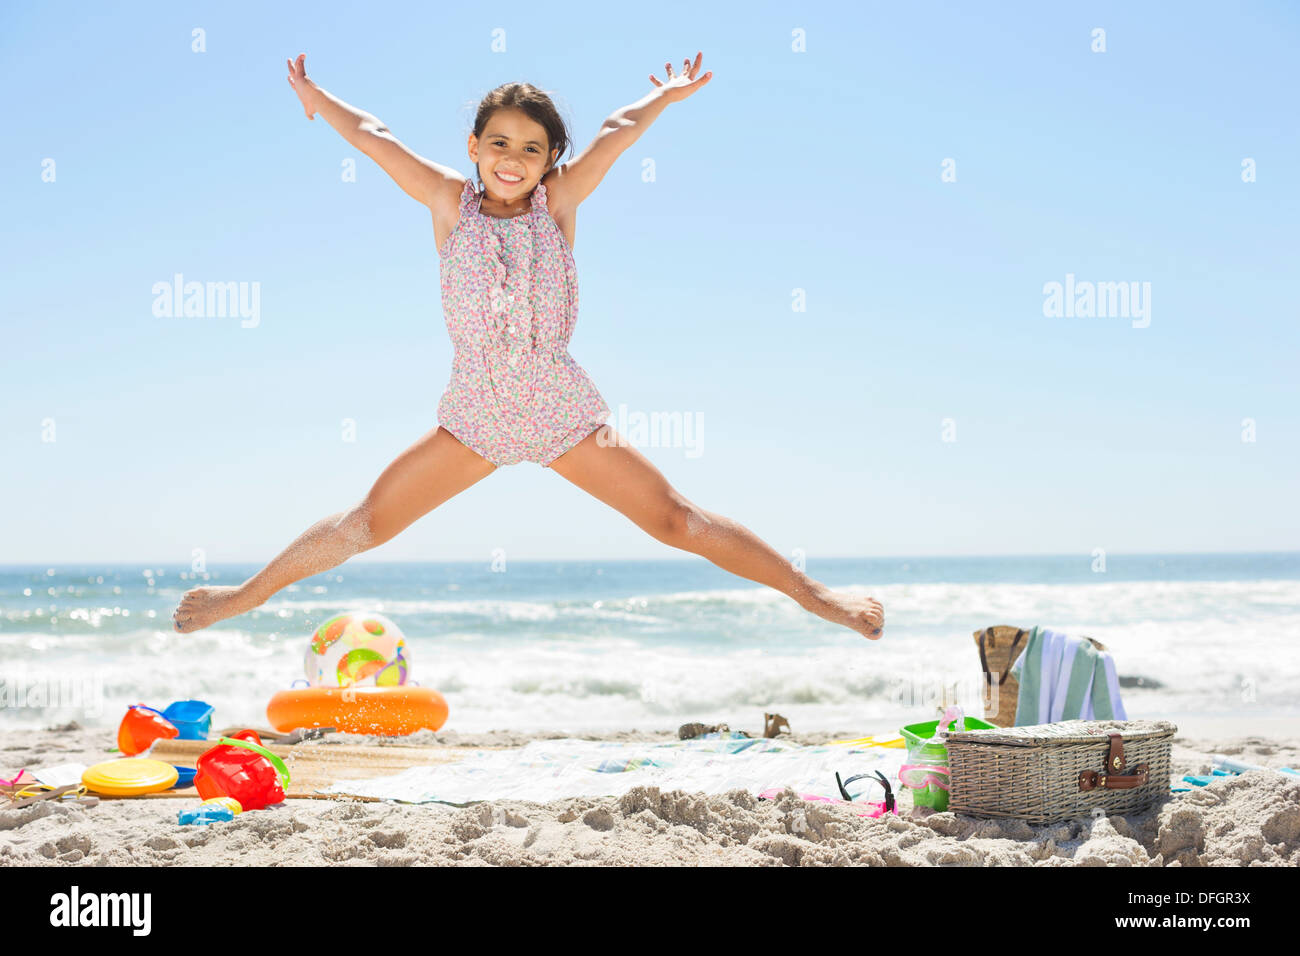 Girl jumping on beach - Stock Image